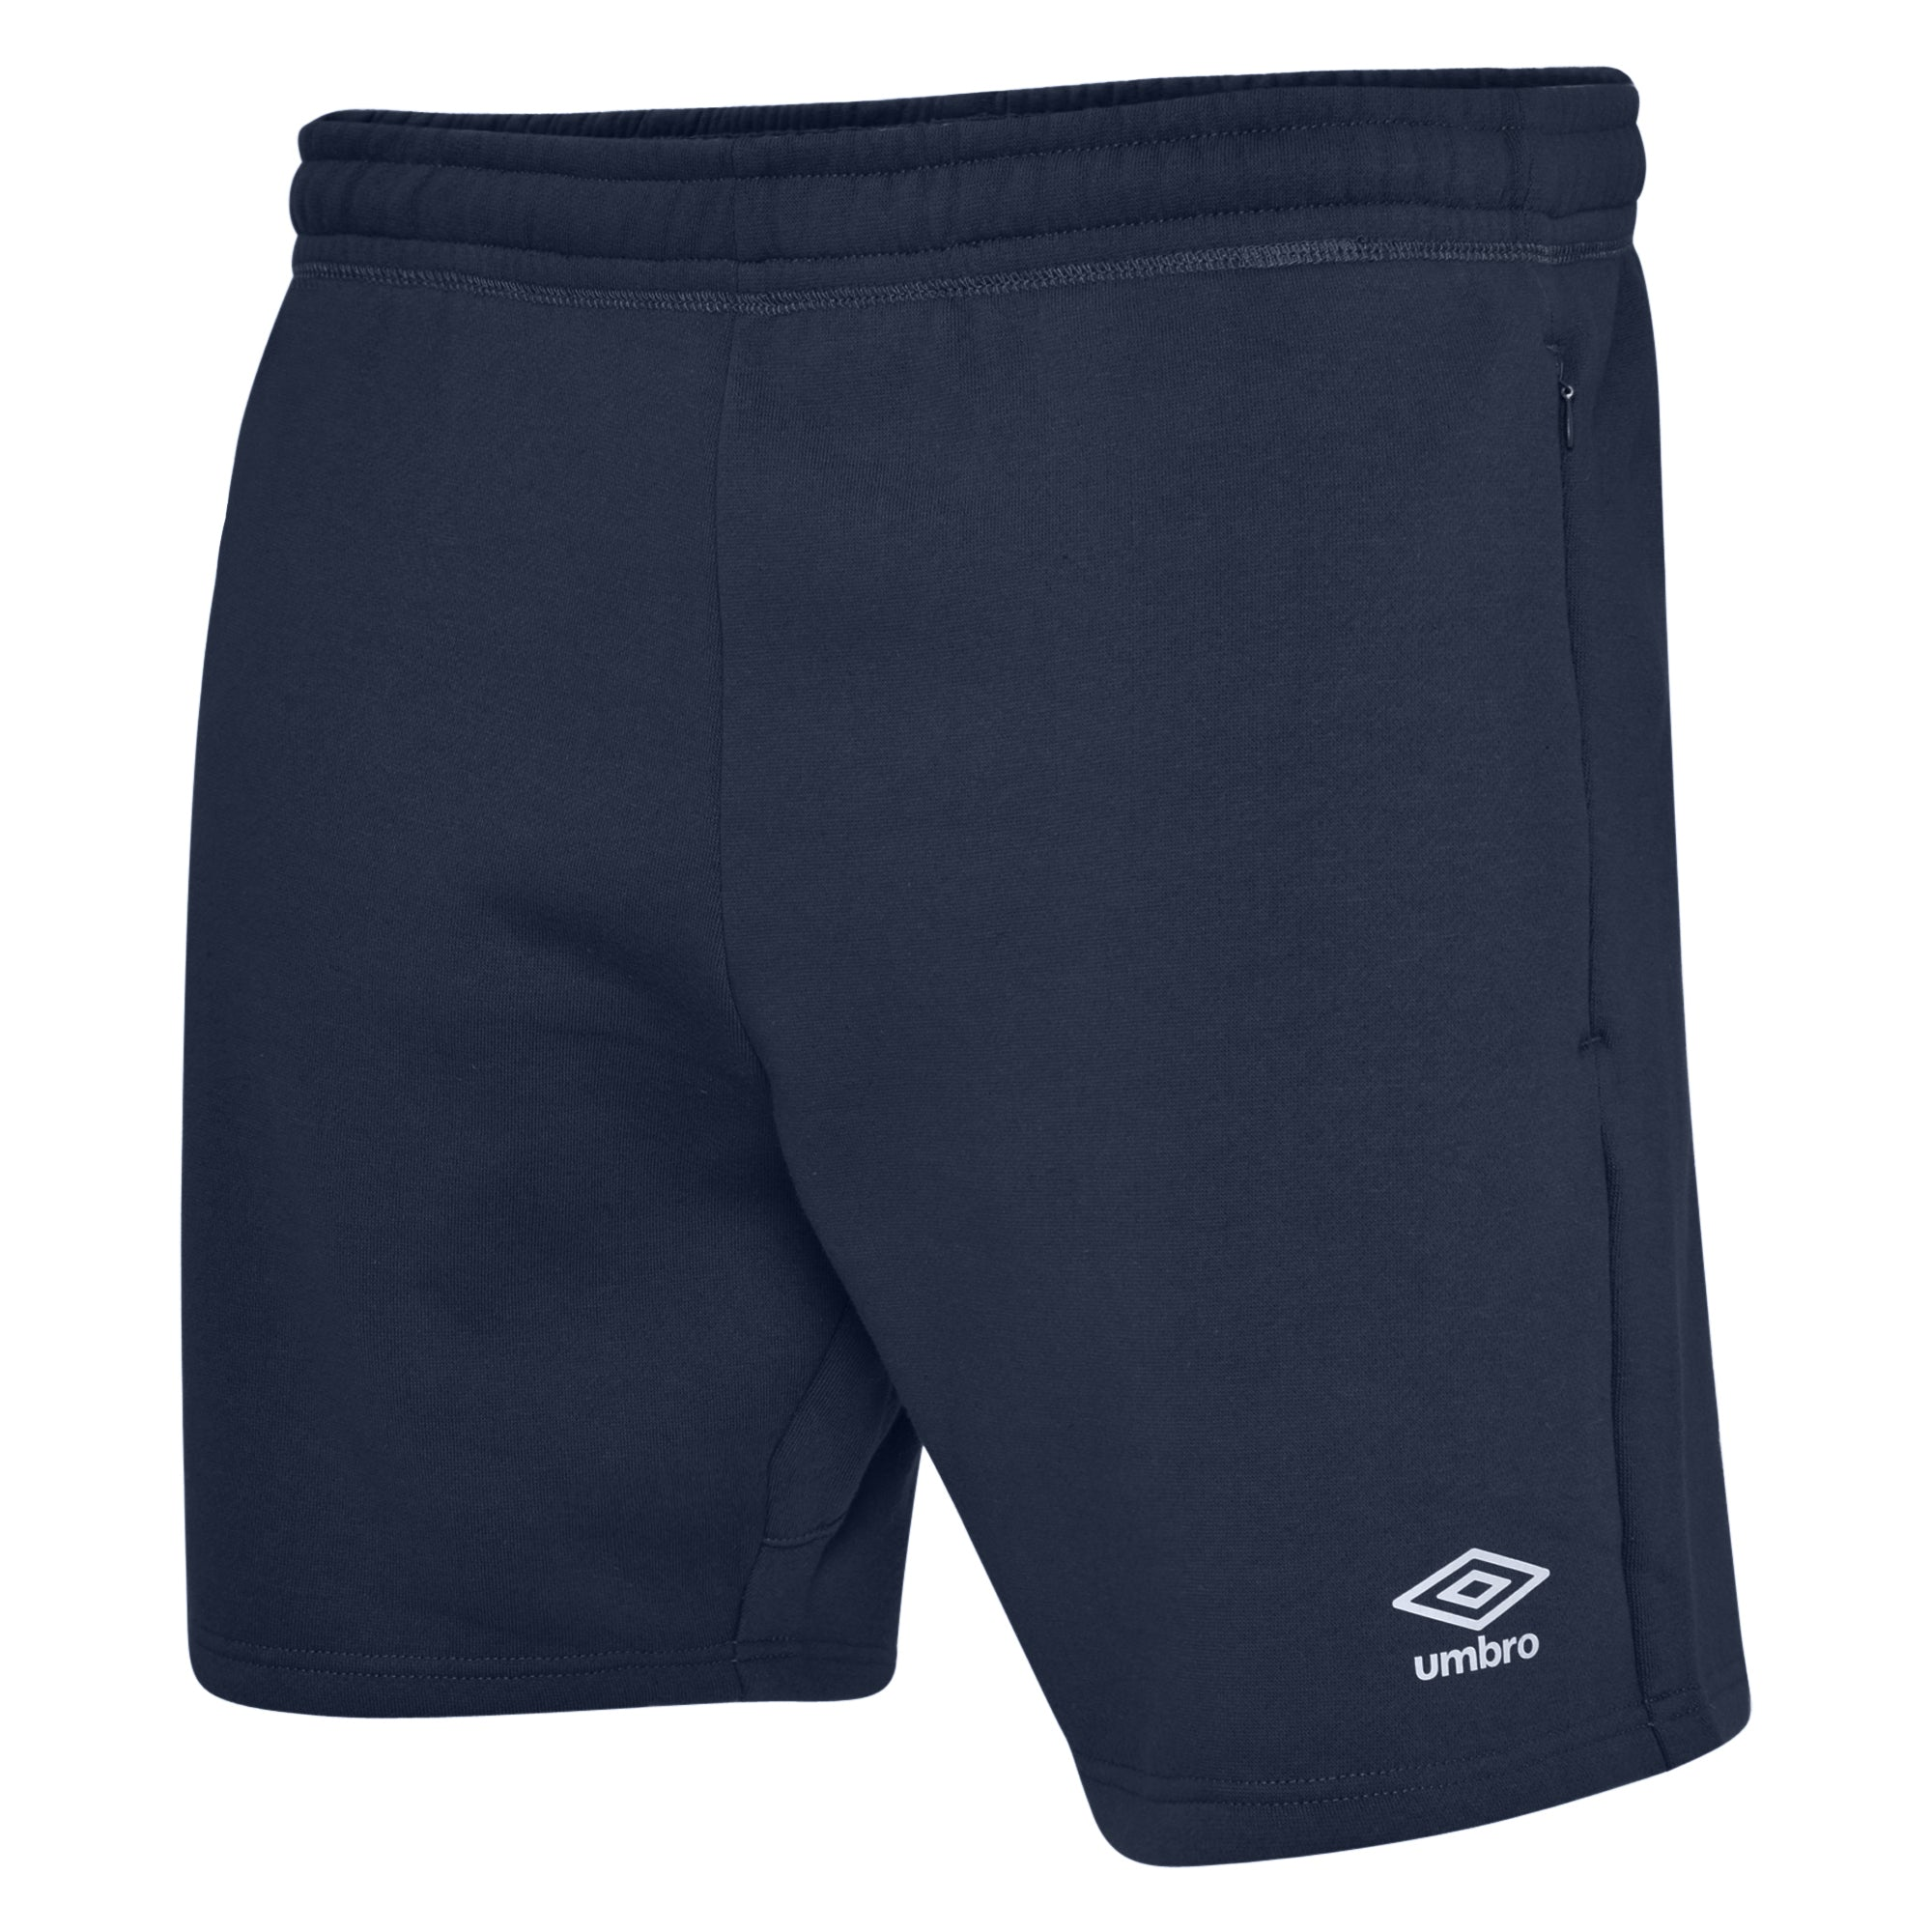 Umbro Club Leisure Jog Shorts - TW Navy/White